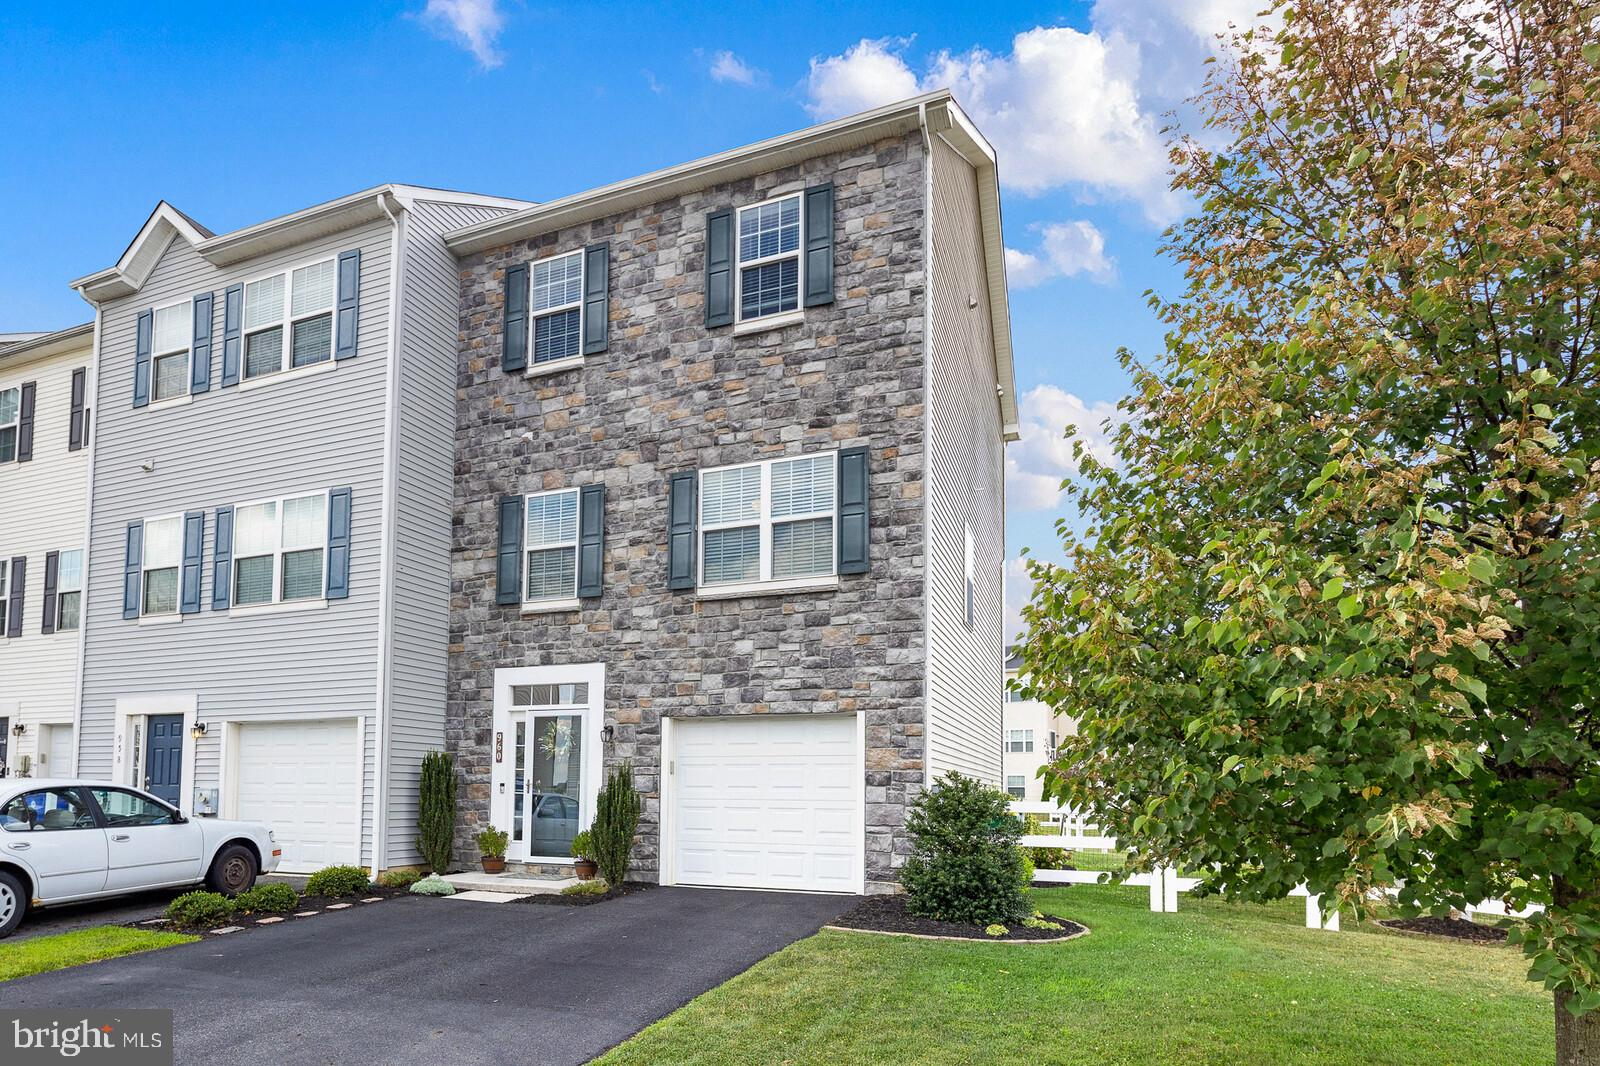 Welcome home to this lovingly-maintained townhome in the sought-after community of Hyett's Crossing.